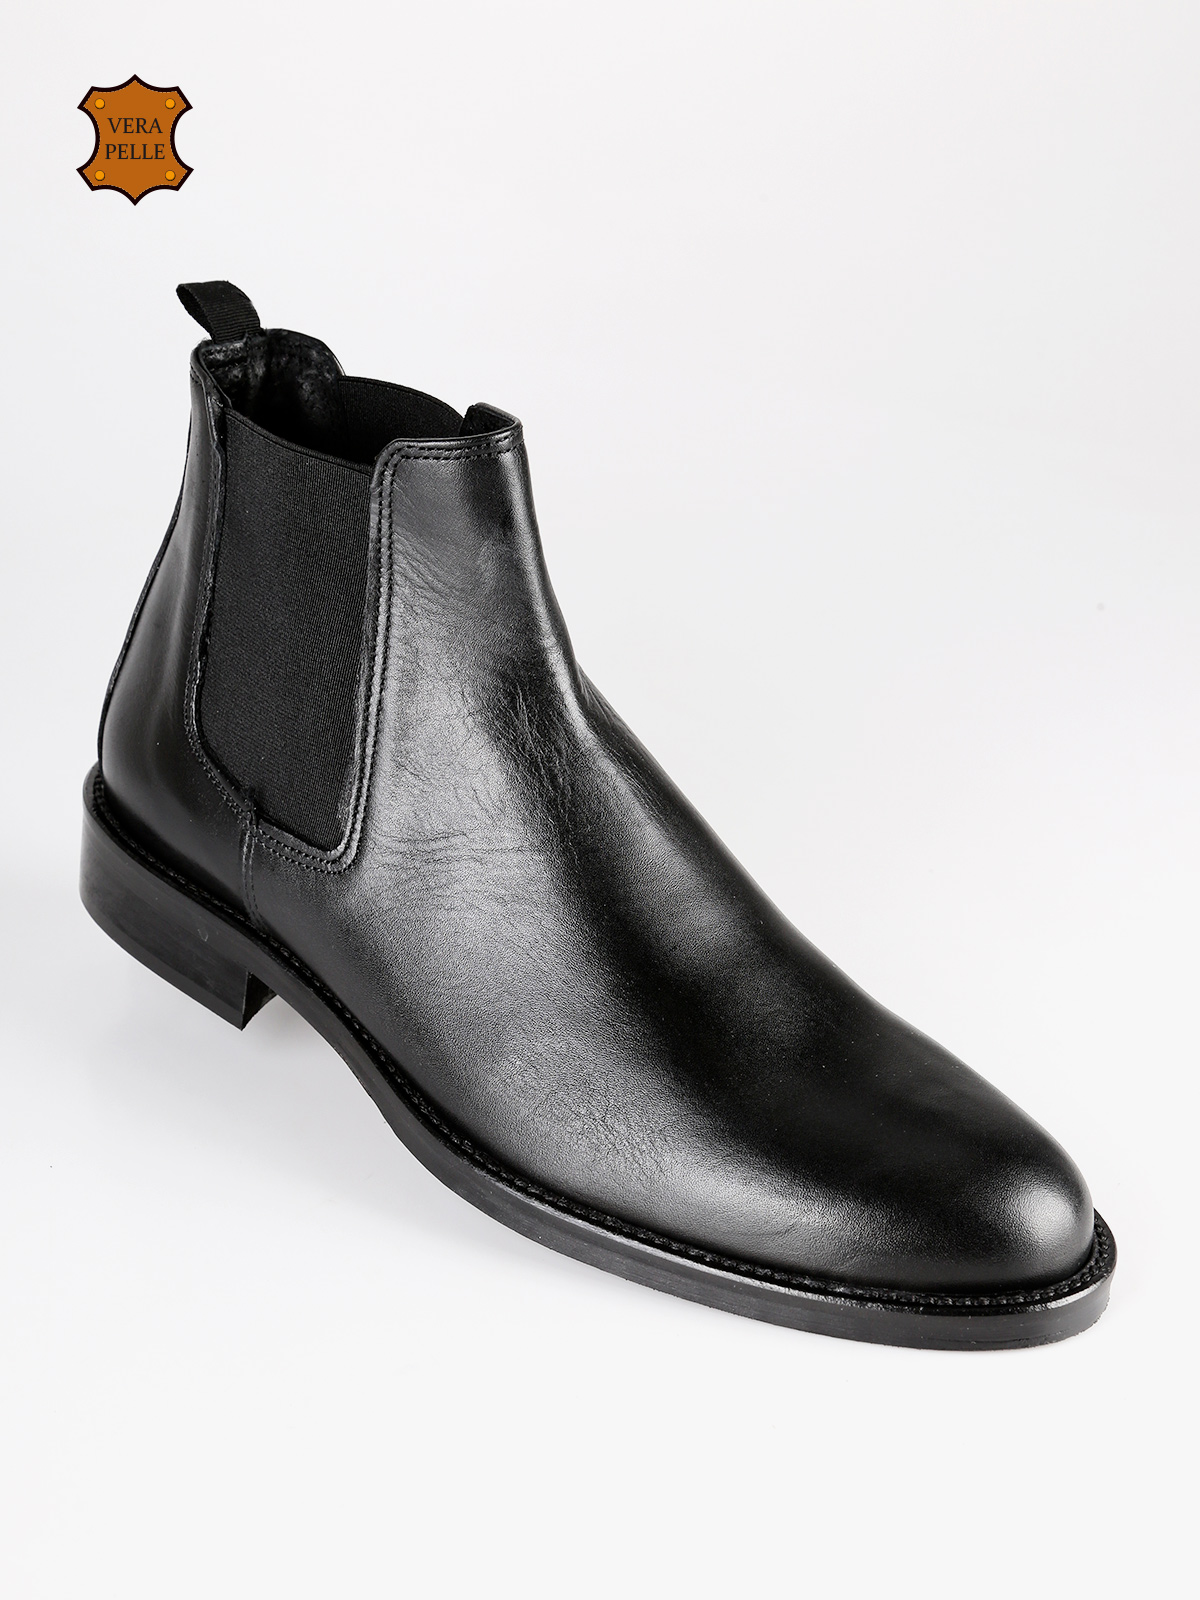 TUSICHEVALI Ankle Boot Chelsea Leather Black